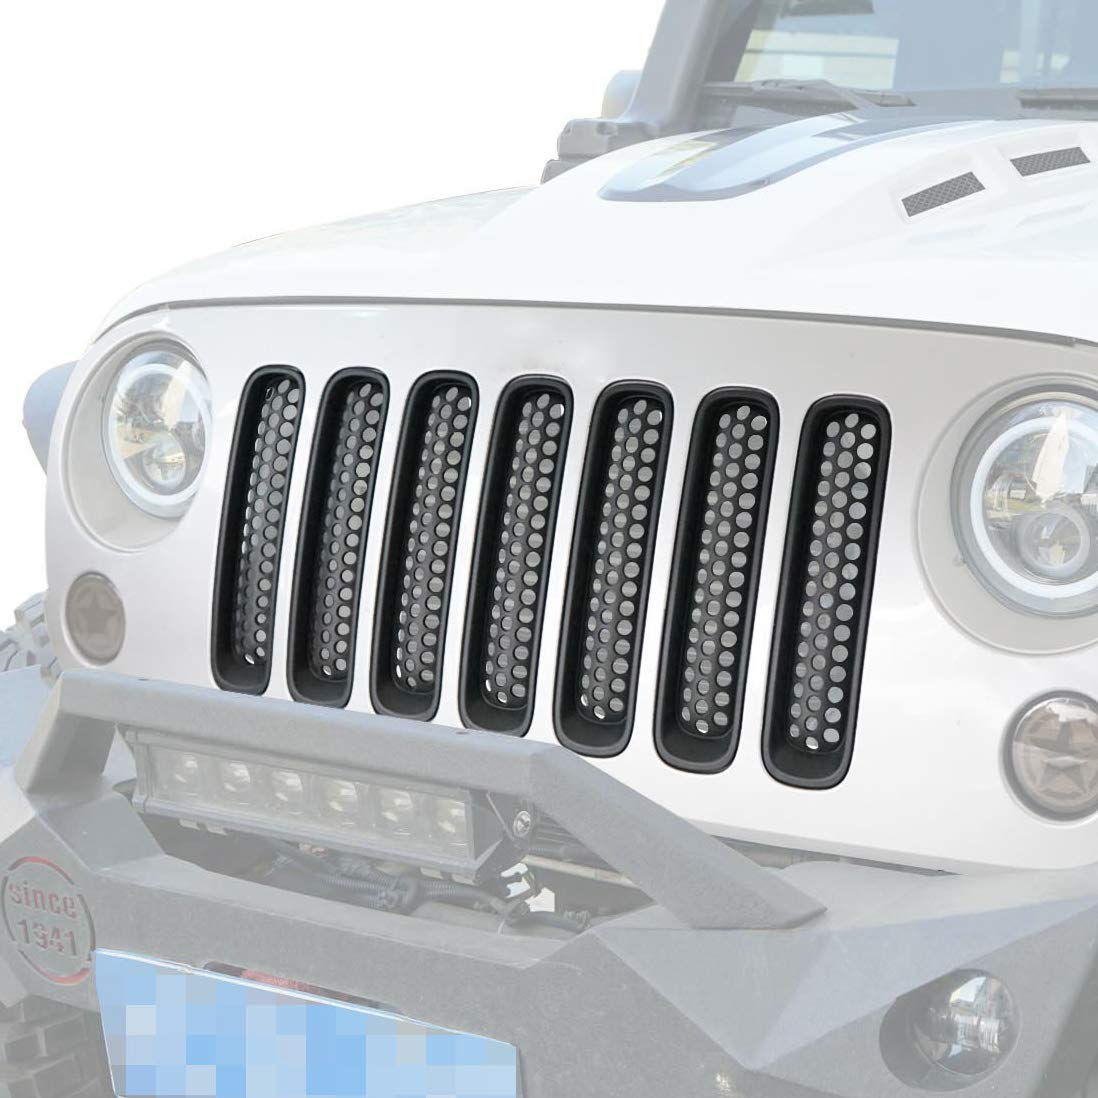 Hooke Road Matte Black Clip-in Mesh Grille Inserts Kit for Wrangler JK Square Grill Slots(Incompatible with Round Grill Slots)